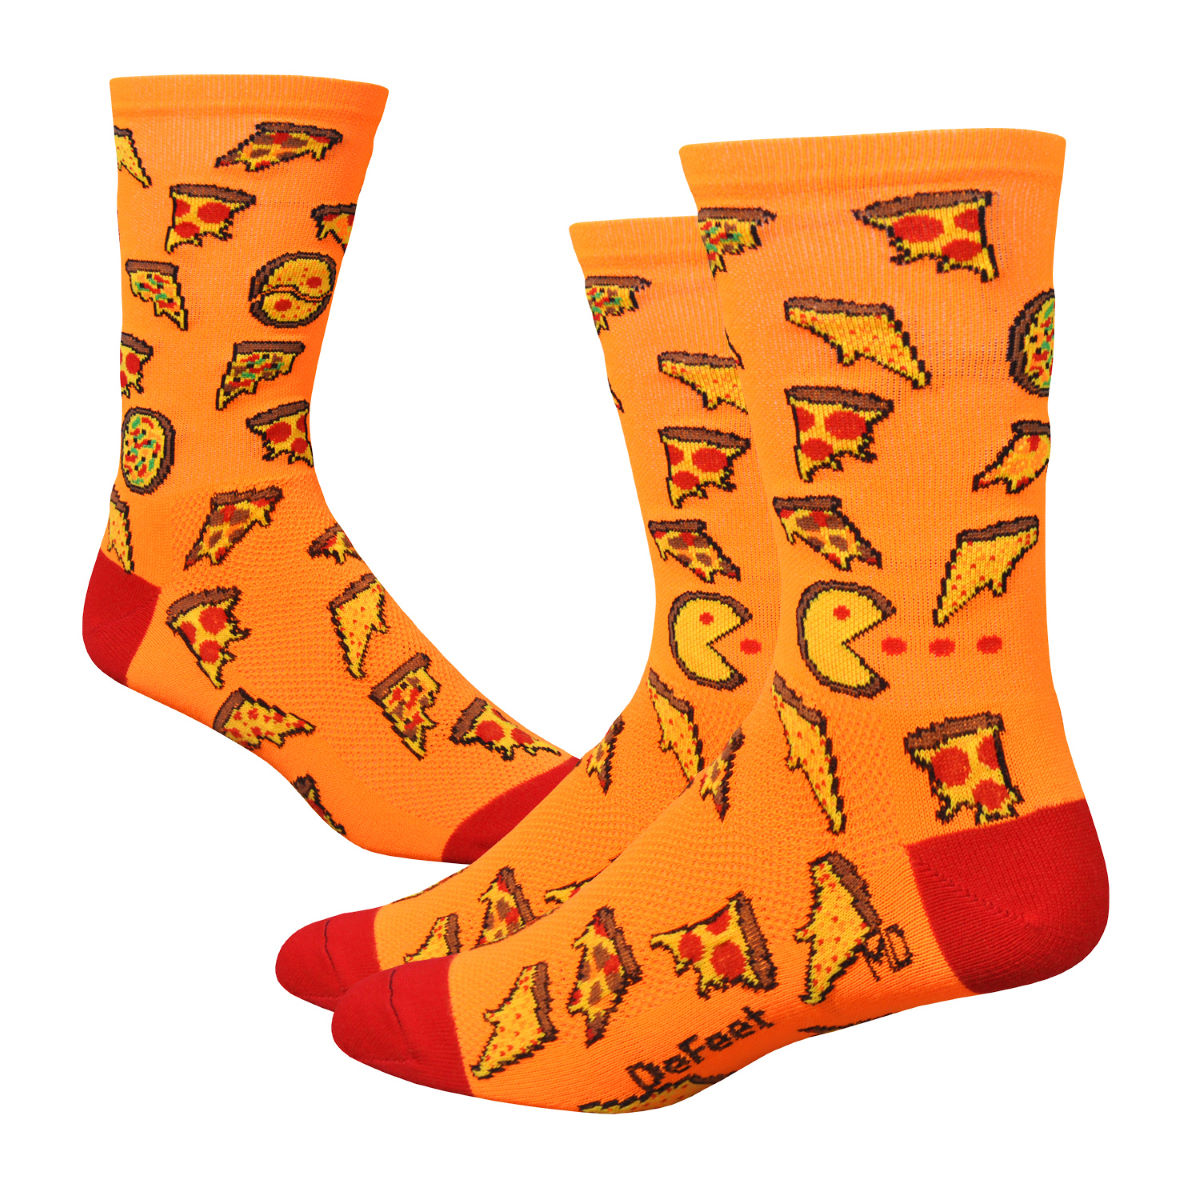 "DeFeet DeFeet Aireator 6"" Pizza Party Socks   Socks"